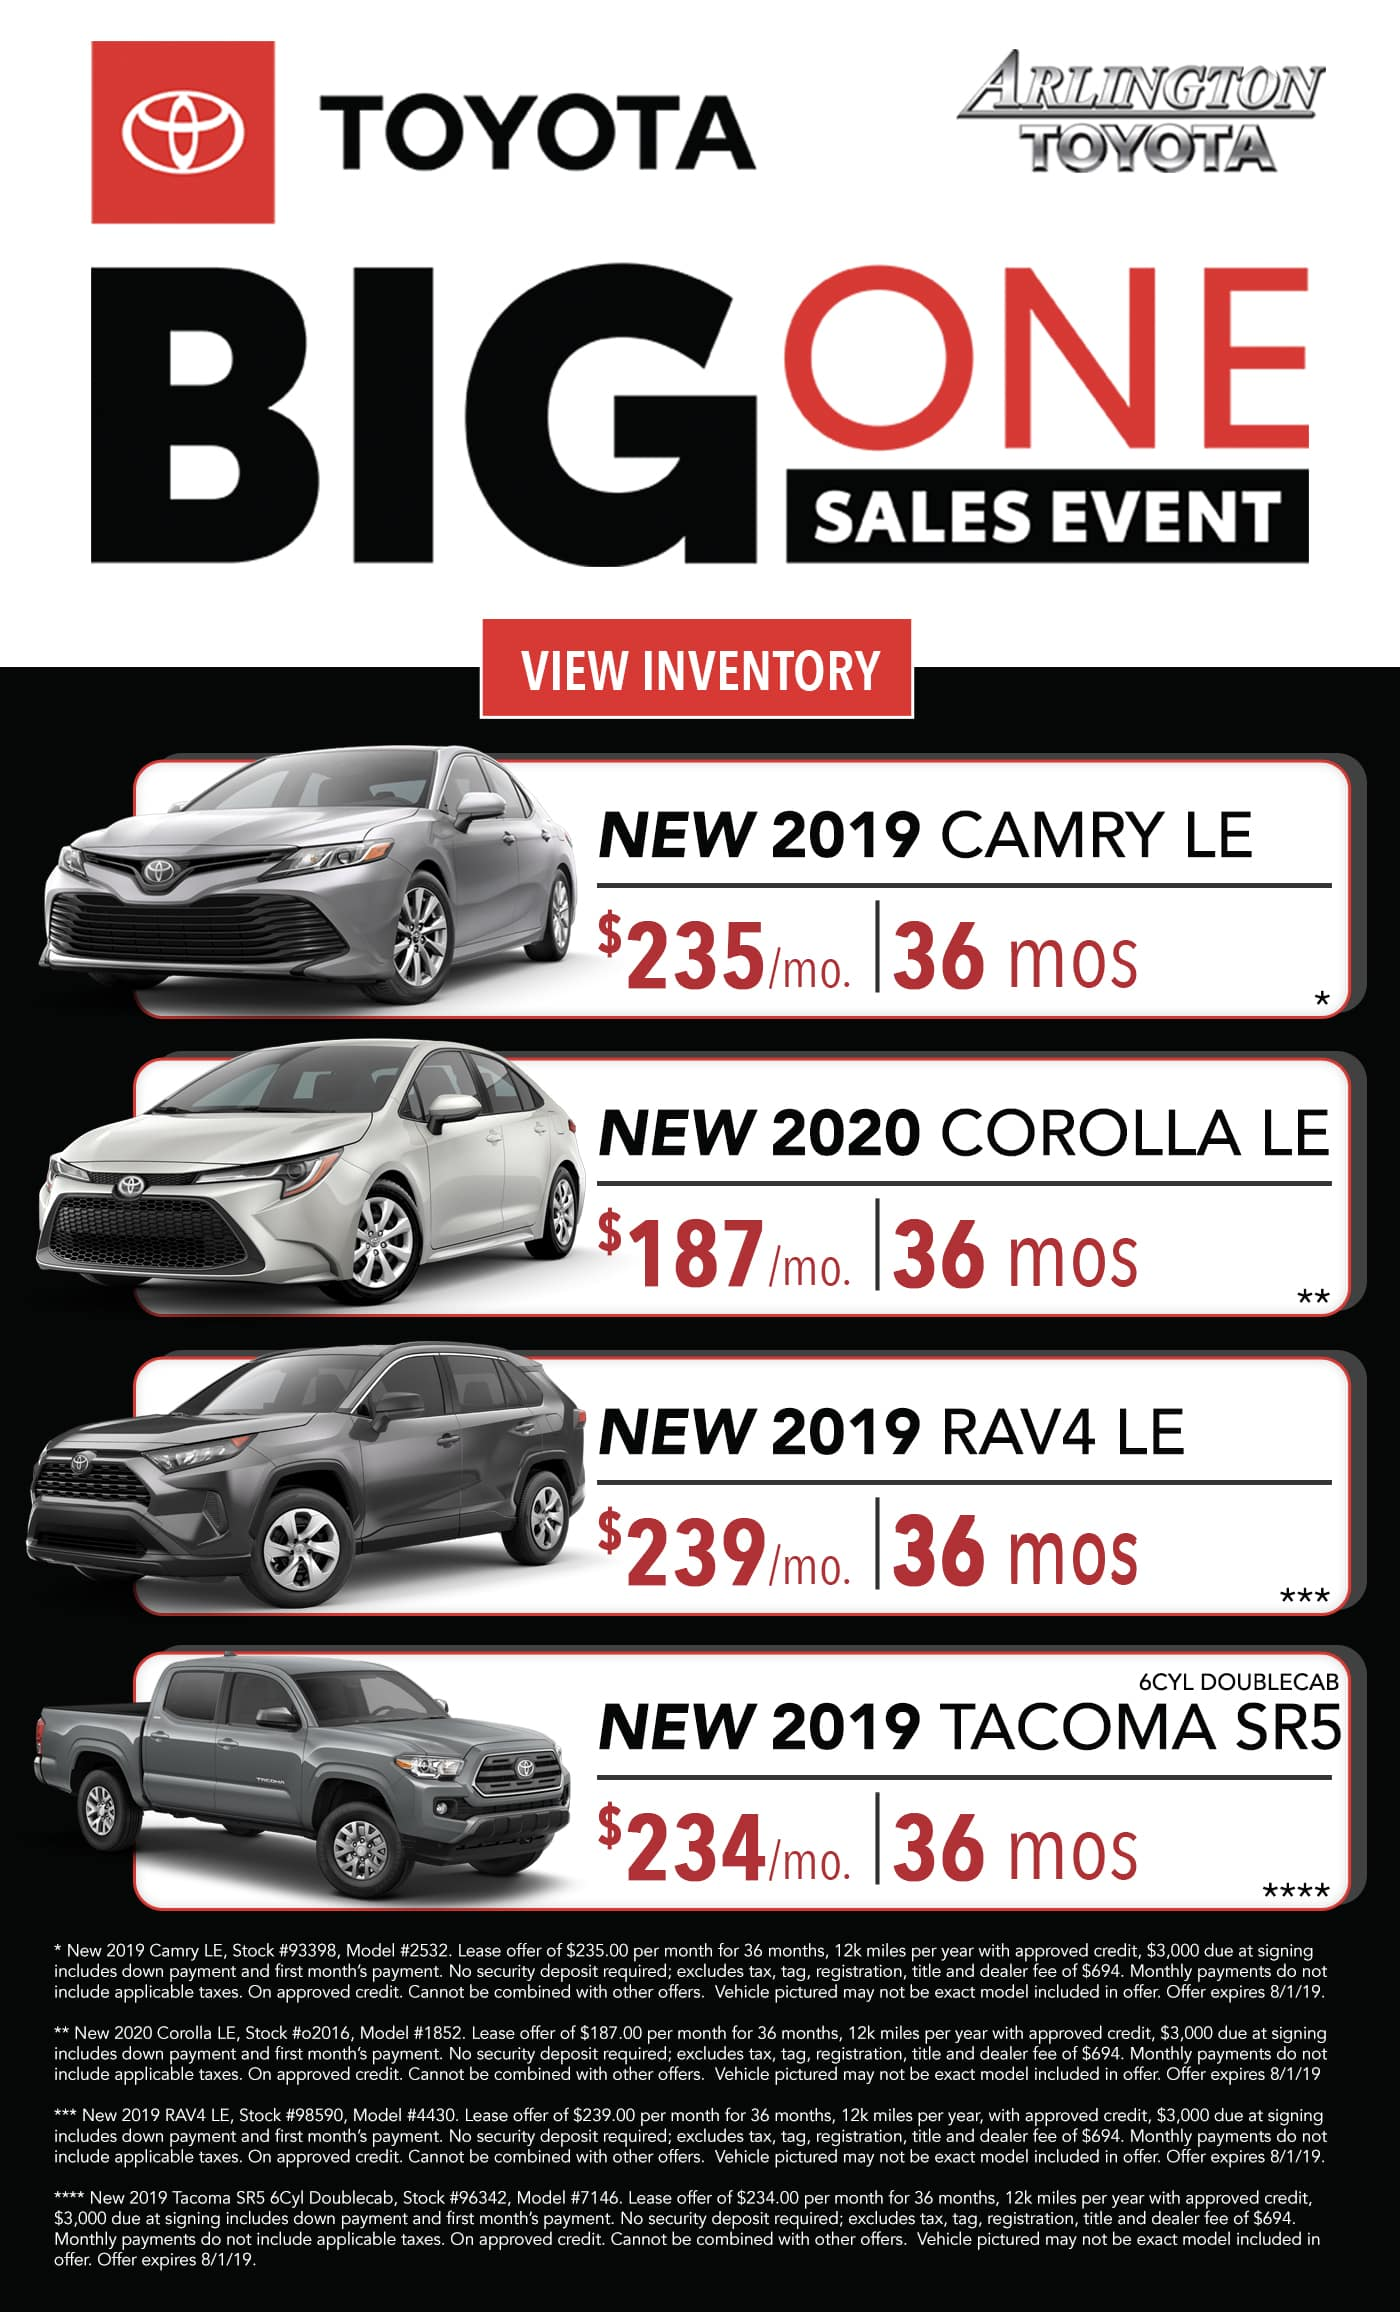 Lease Specials Near Me >> Big One Lease Specials July 2019 Arlington Toyota